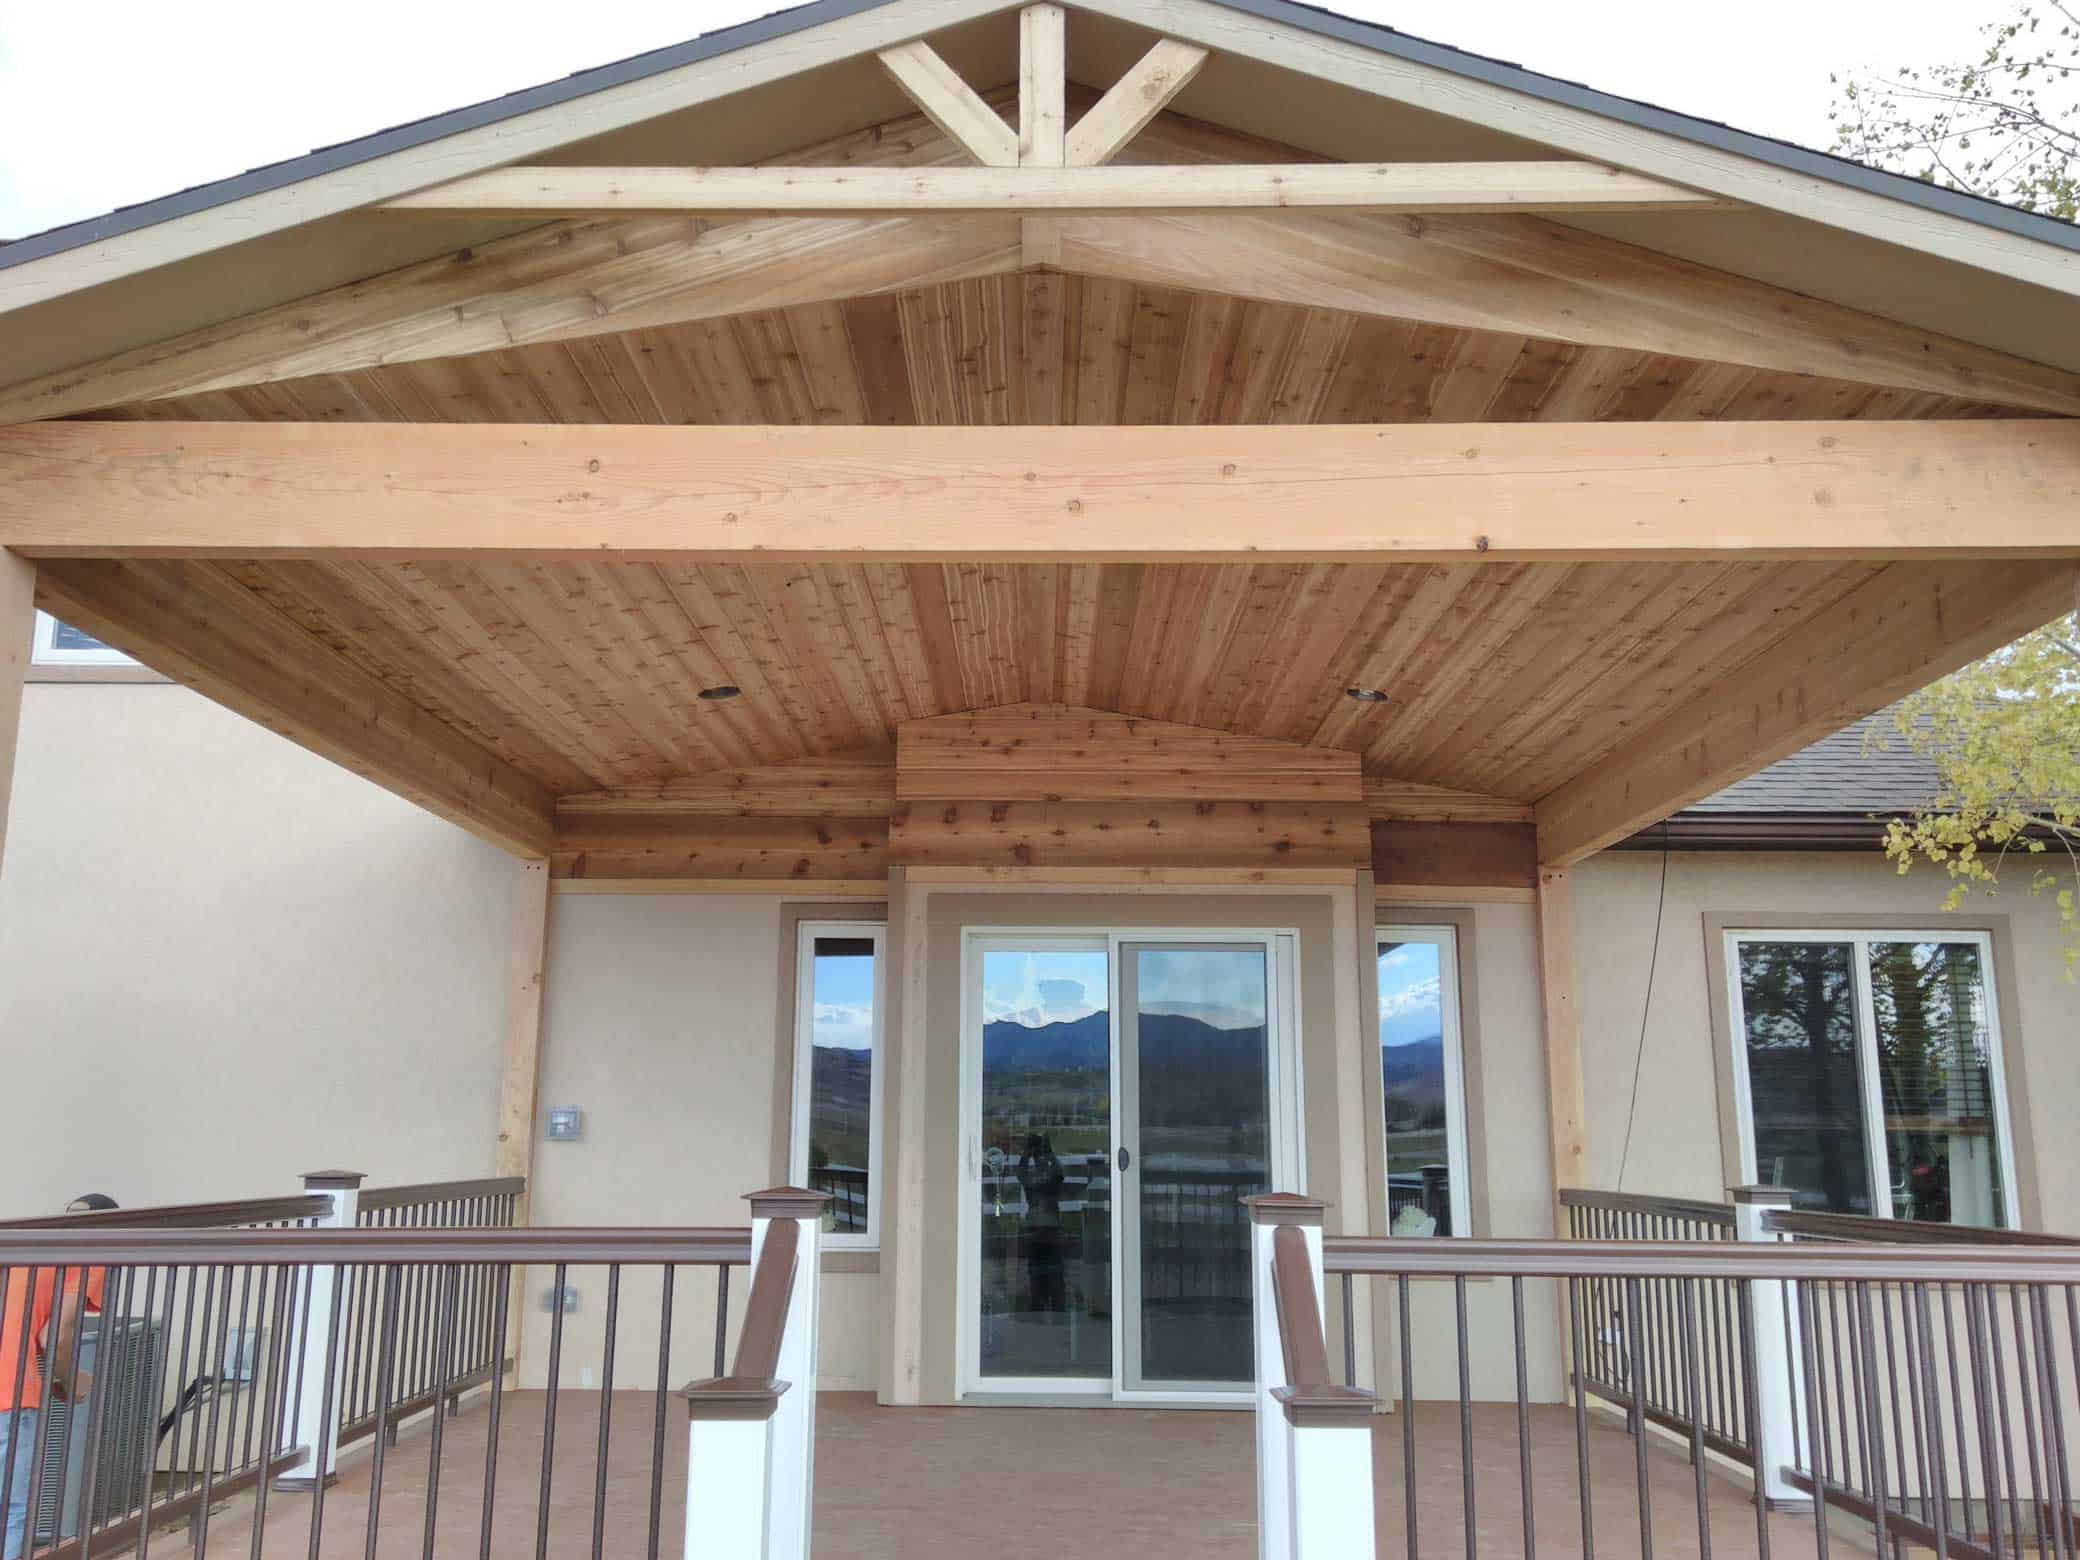 pic of a patio cover and deck built in loveland, co